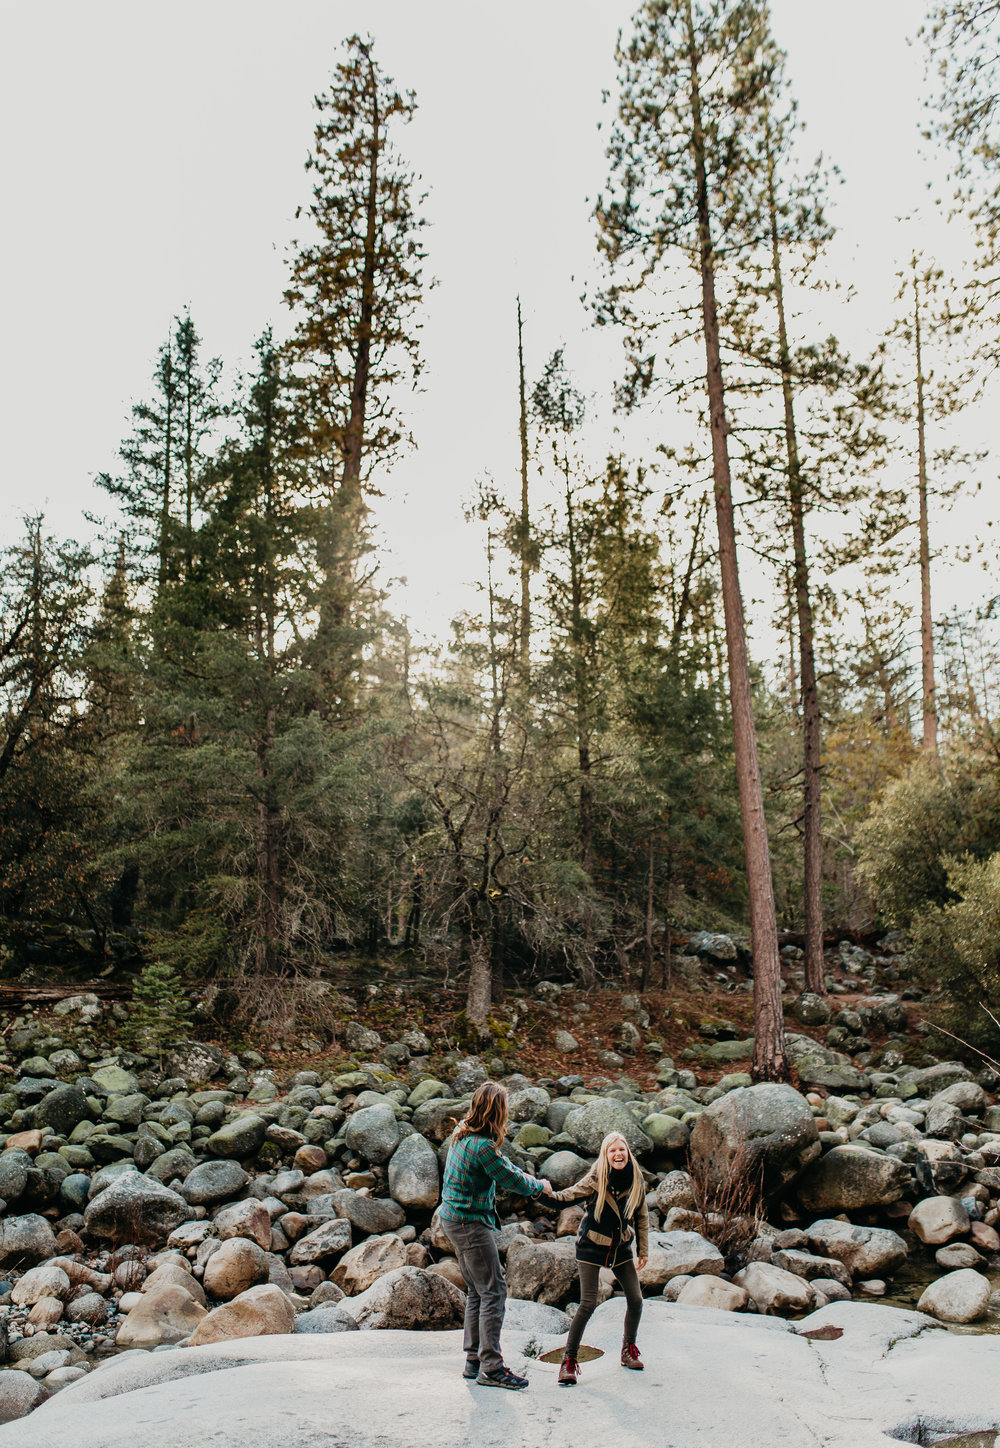 nicole-daacke-photography-yosemite-riverside-adventurous-engagement-photos-in-yosemite-national-park-elopement-photographer-weddings-travel-destination-wedding-eloping-elope-pine-forest-17.jpg